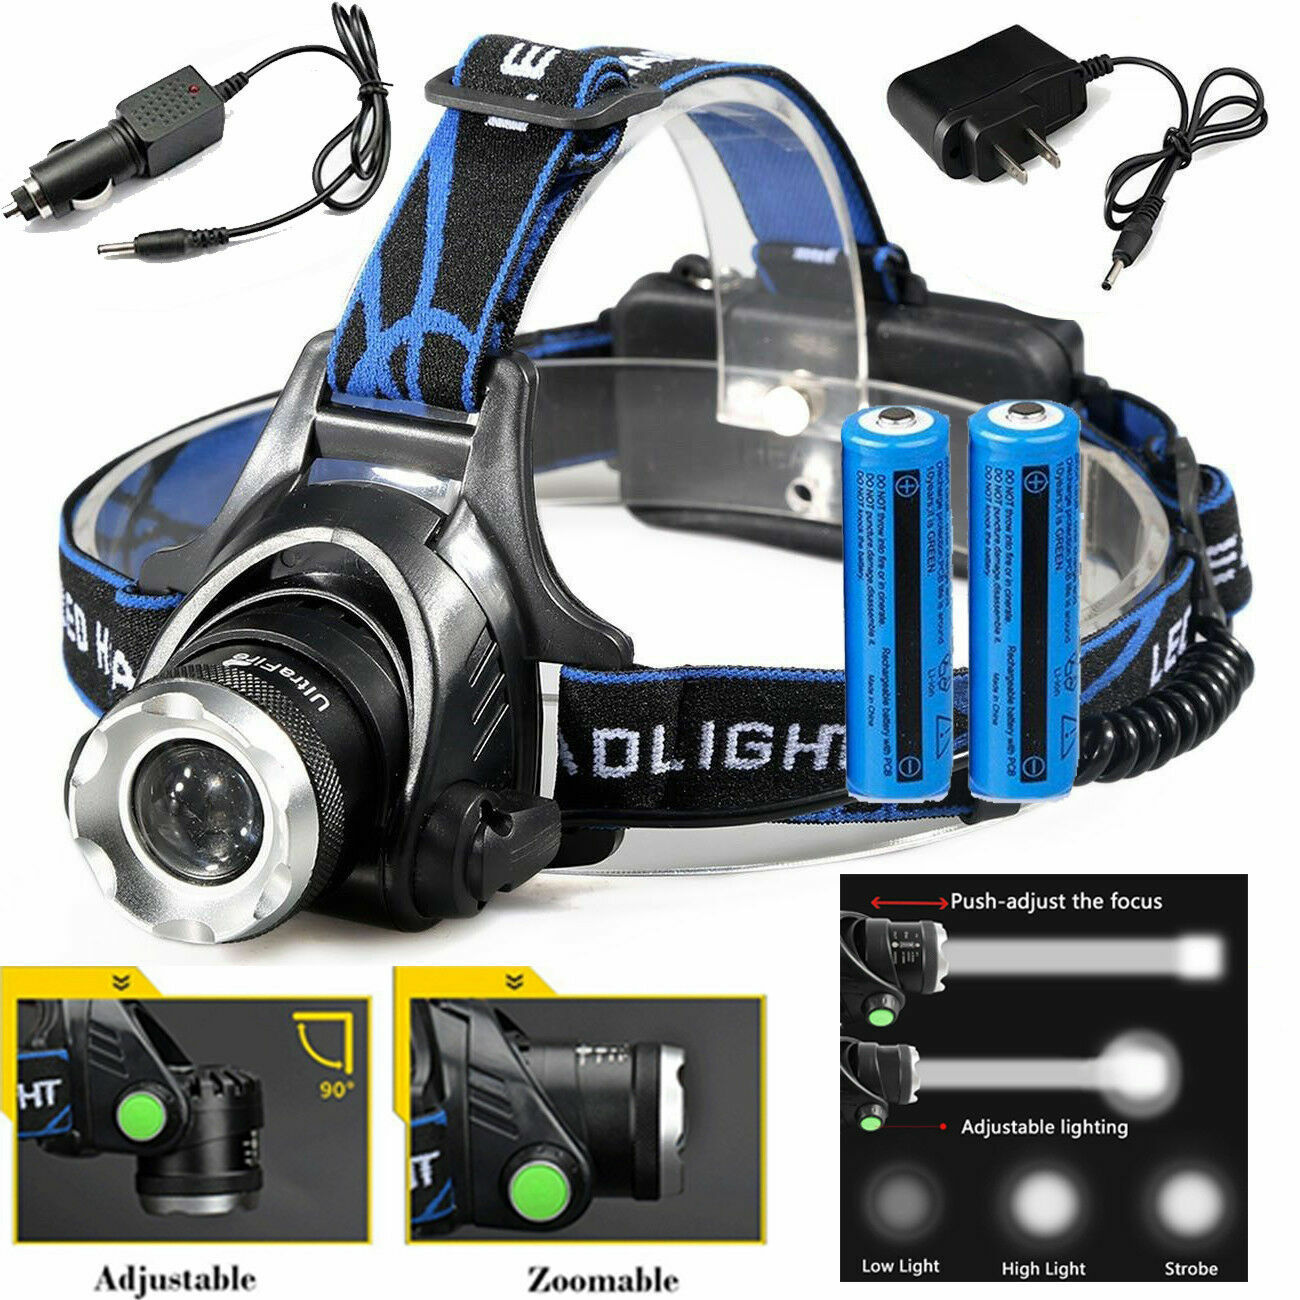 990000LM LED Headlamp Rechargeable Headlight Zoomable Head Torch Lamp Flashlight Flashlights & Work Lights